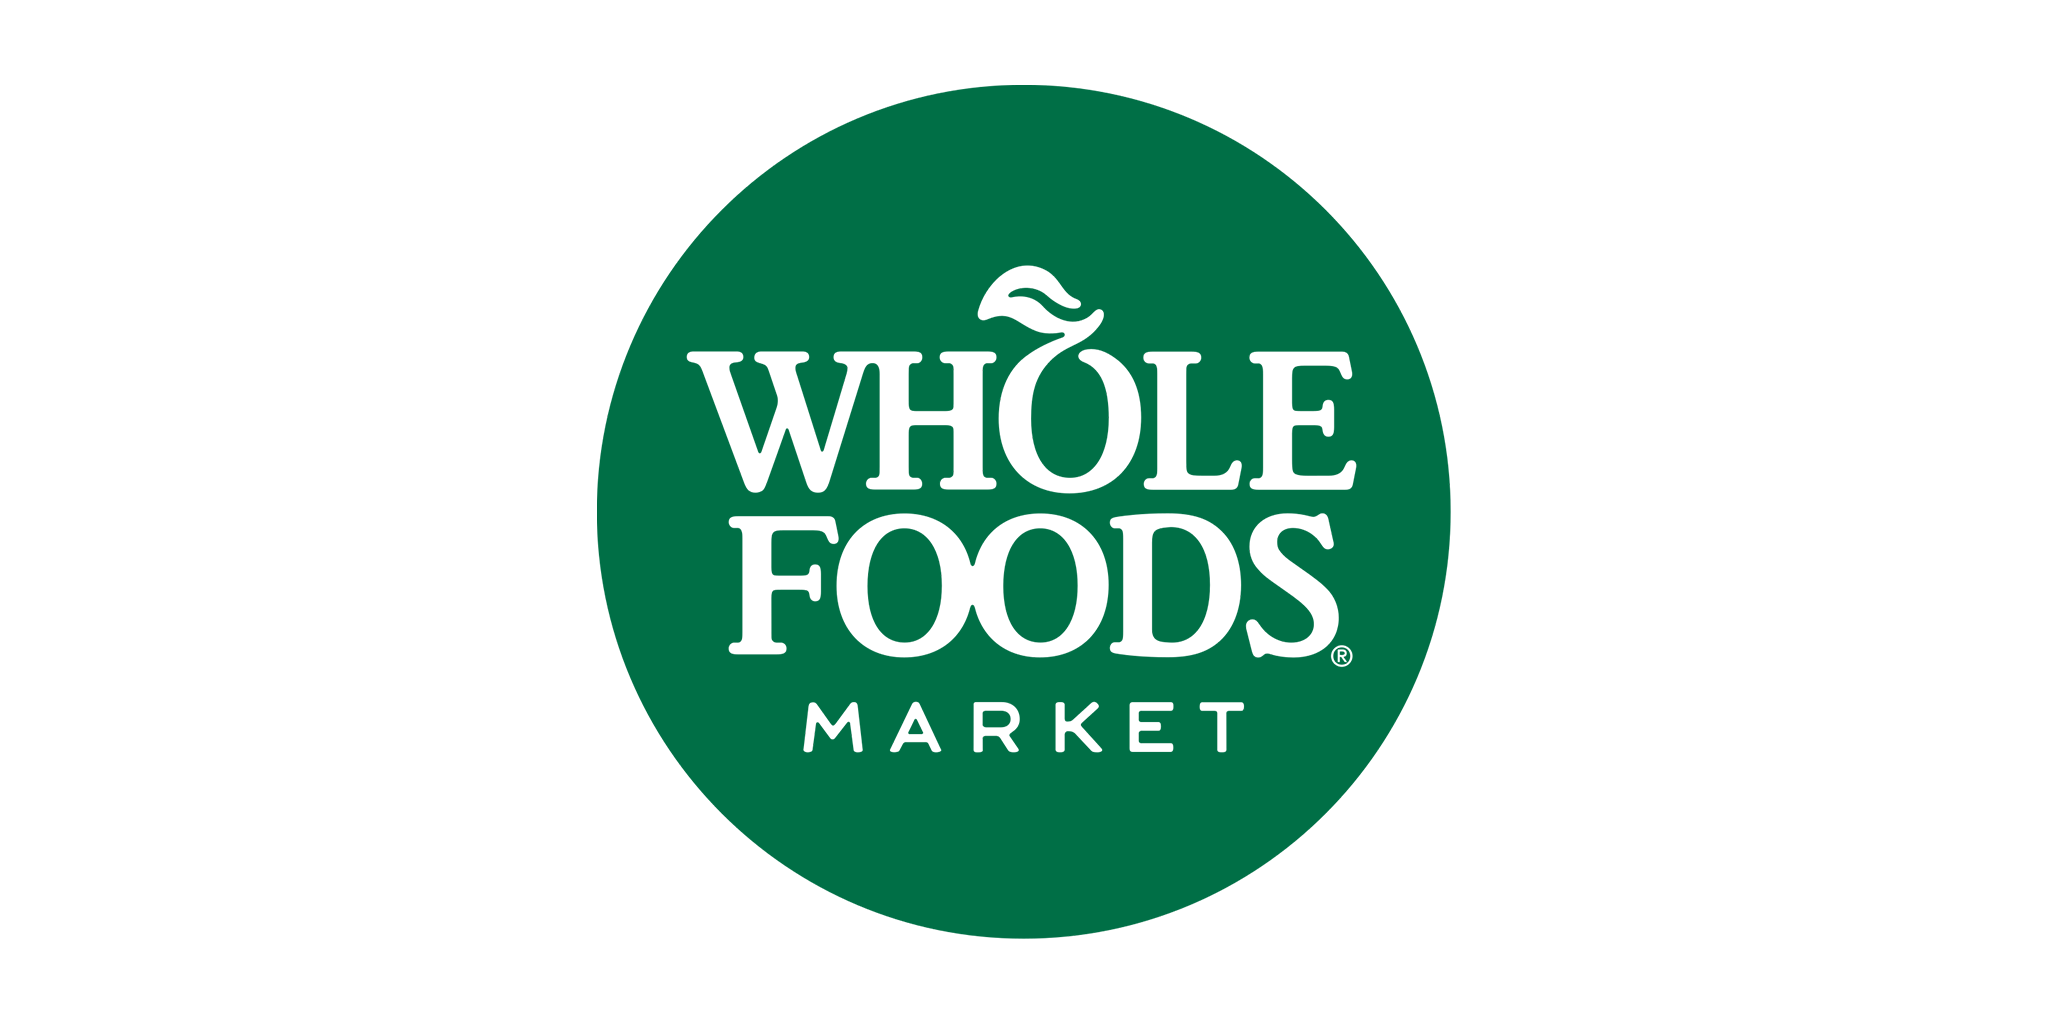 Where to Buy/Ralston-Family-Farms-Grocers-whole-foods.png